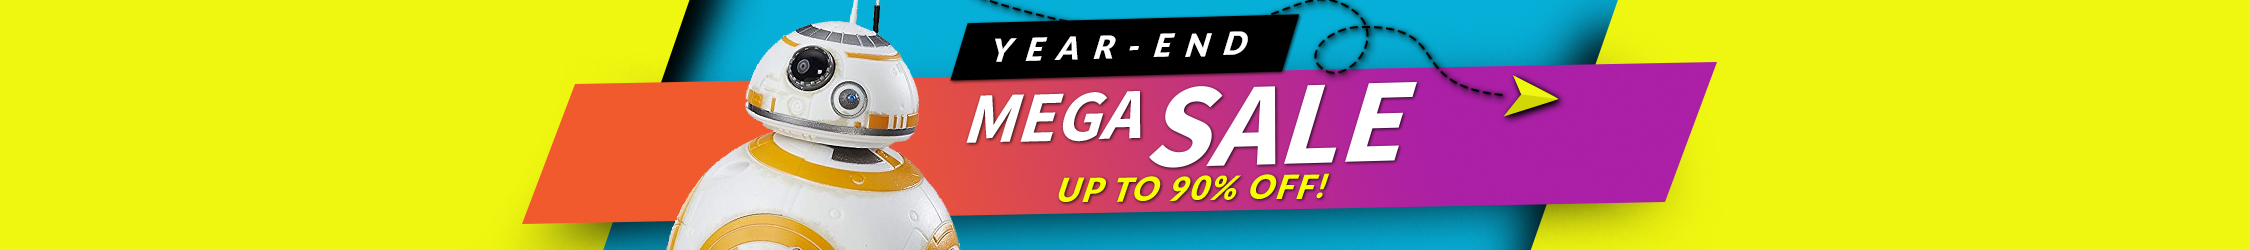 Year-End Mega Sale Up to 90% Off